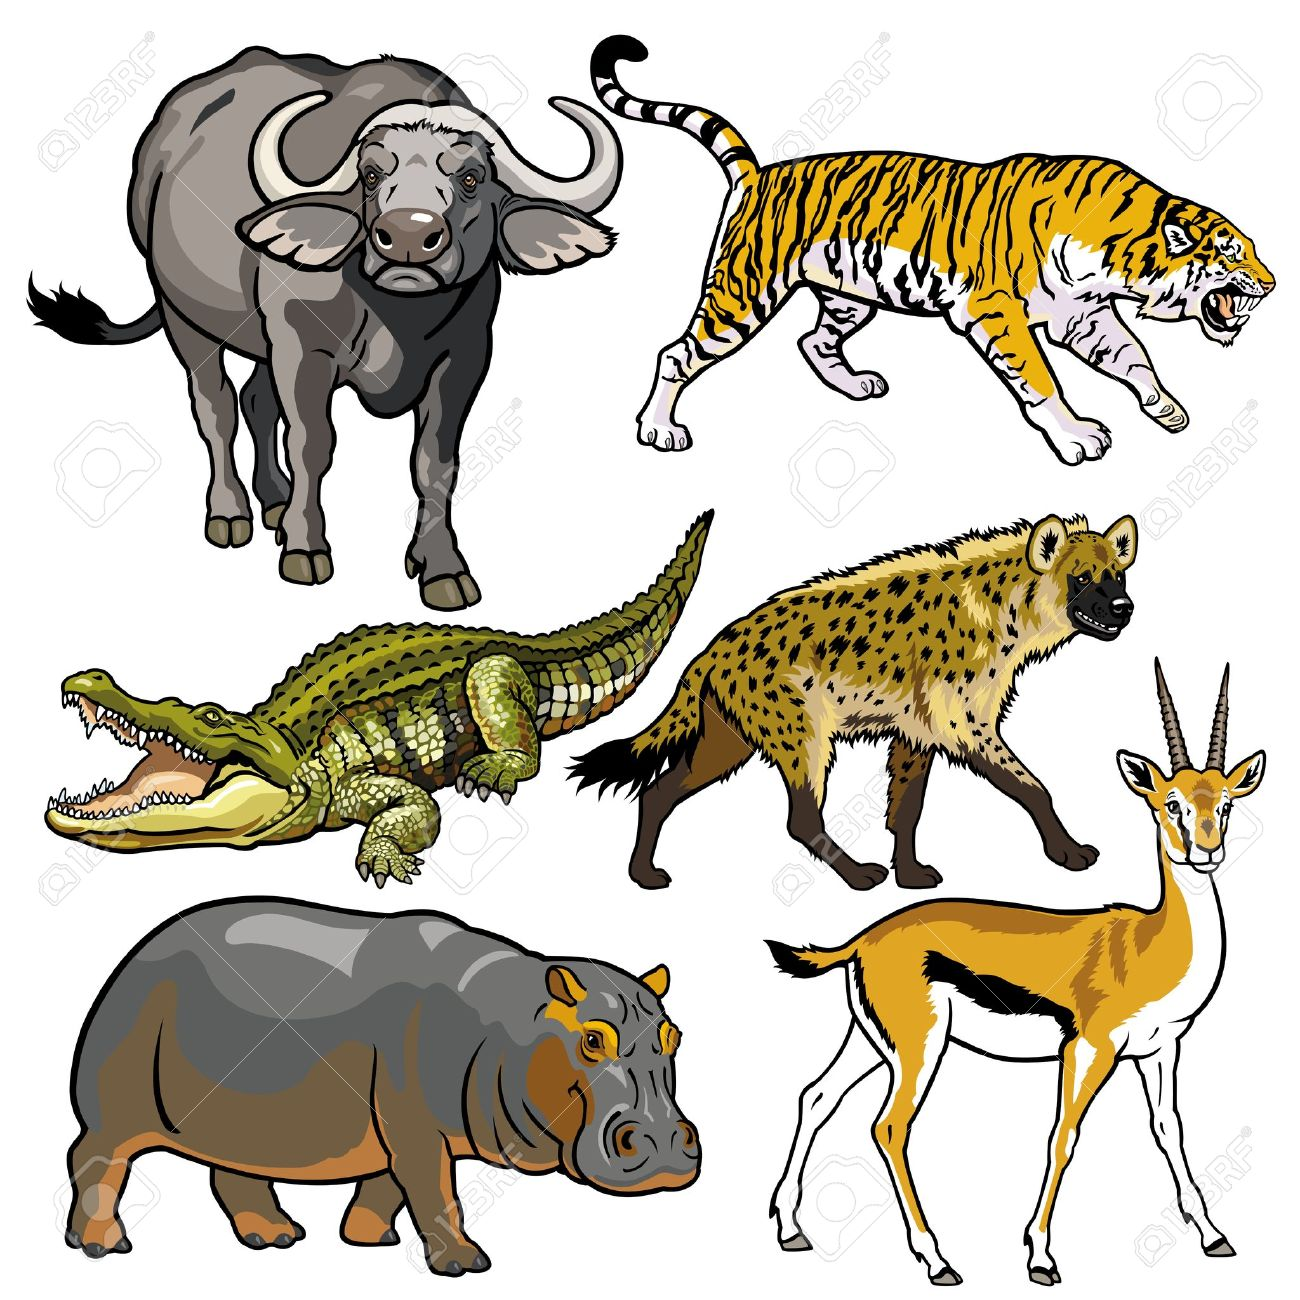 Set with africa animals black white stock vector 169 insima - Spotted Hyena Set With African Animals Wild Beasts Of Africa Pictures Isolated On